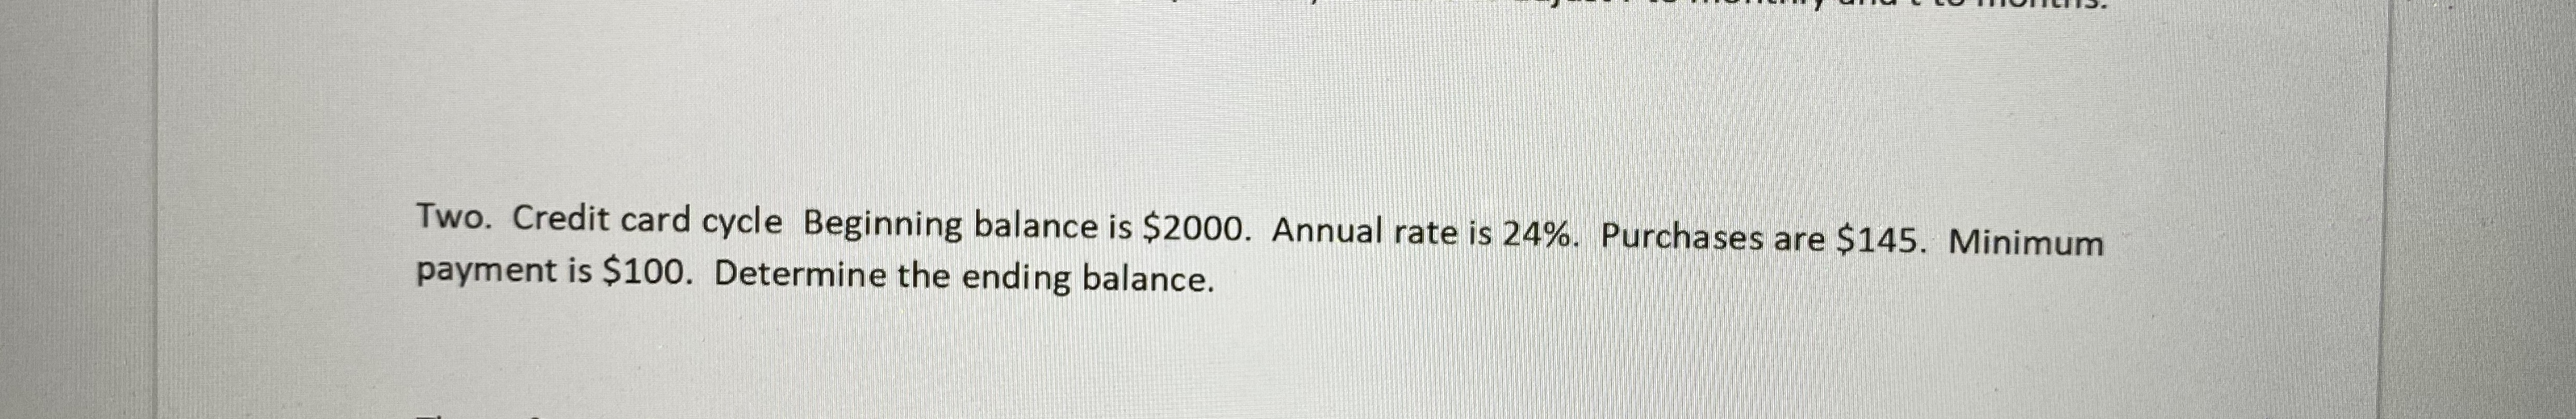 Two. Credit card cycle Beginning balance is $2000. Annual rate is 24%. Purchases are $145. Minimum payment is $100. Determine the ending balance.